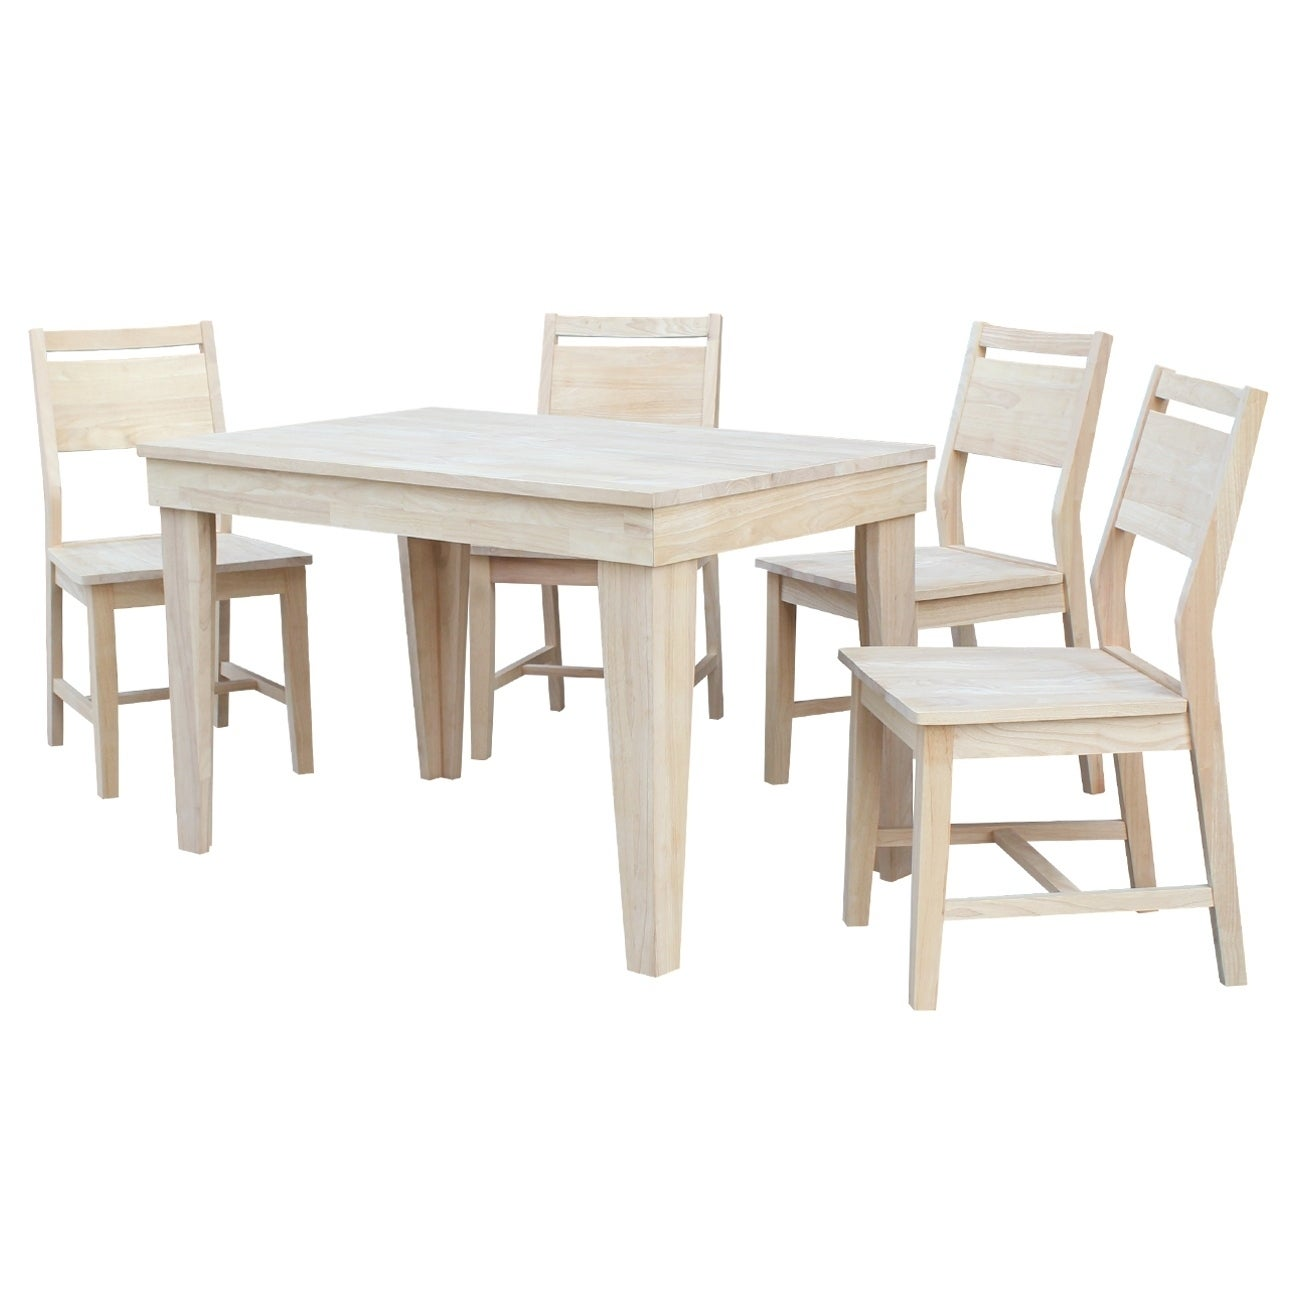 Aspen Solid Wood Dining Table With 4 Aspen Panel Chairs Unfinished 5 Piece Set